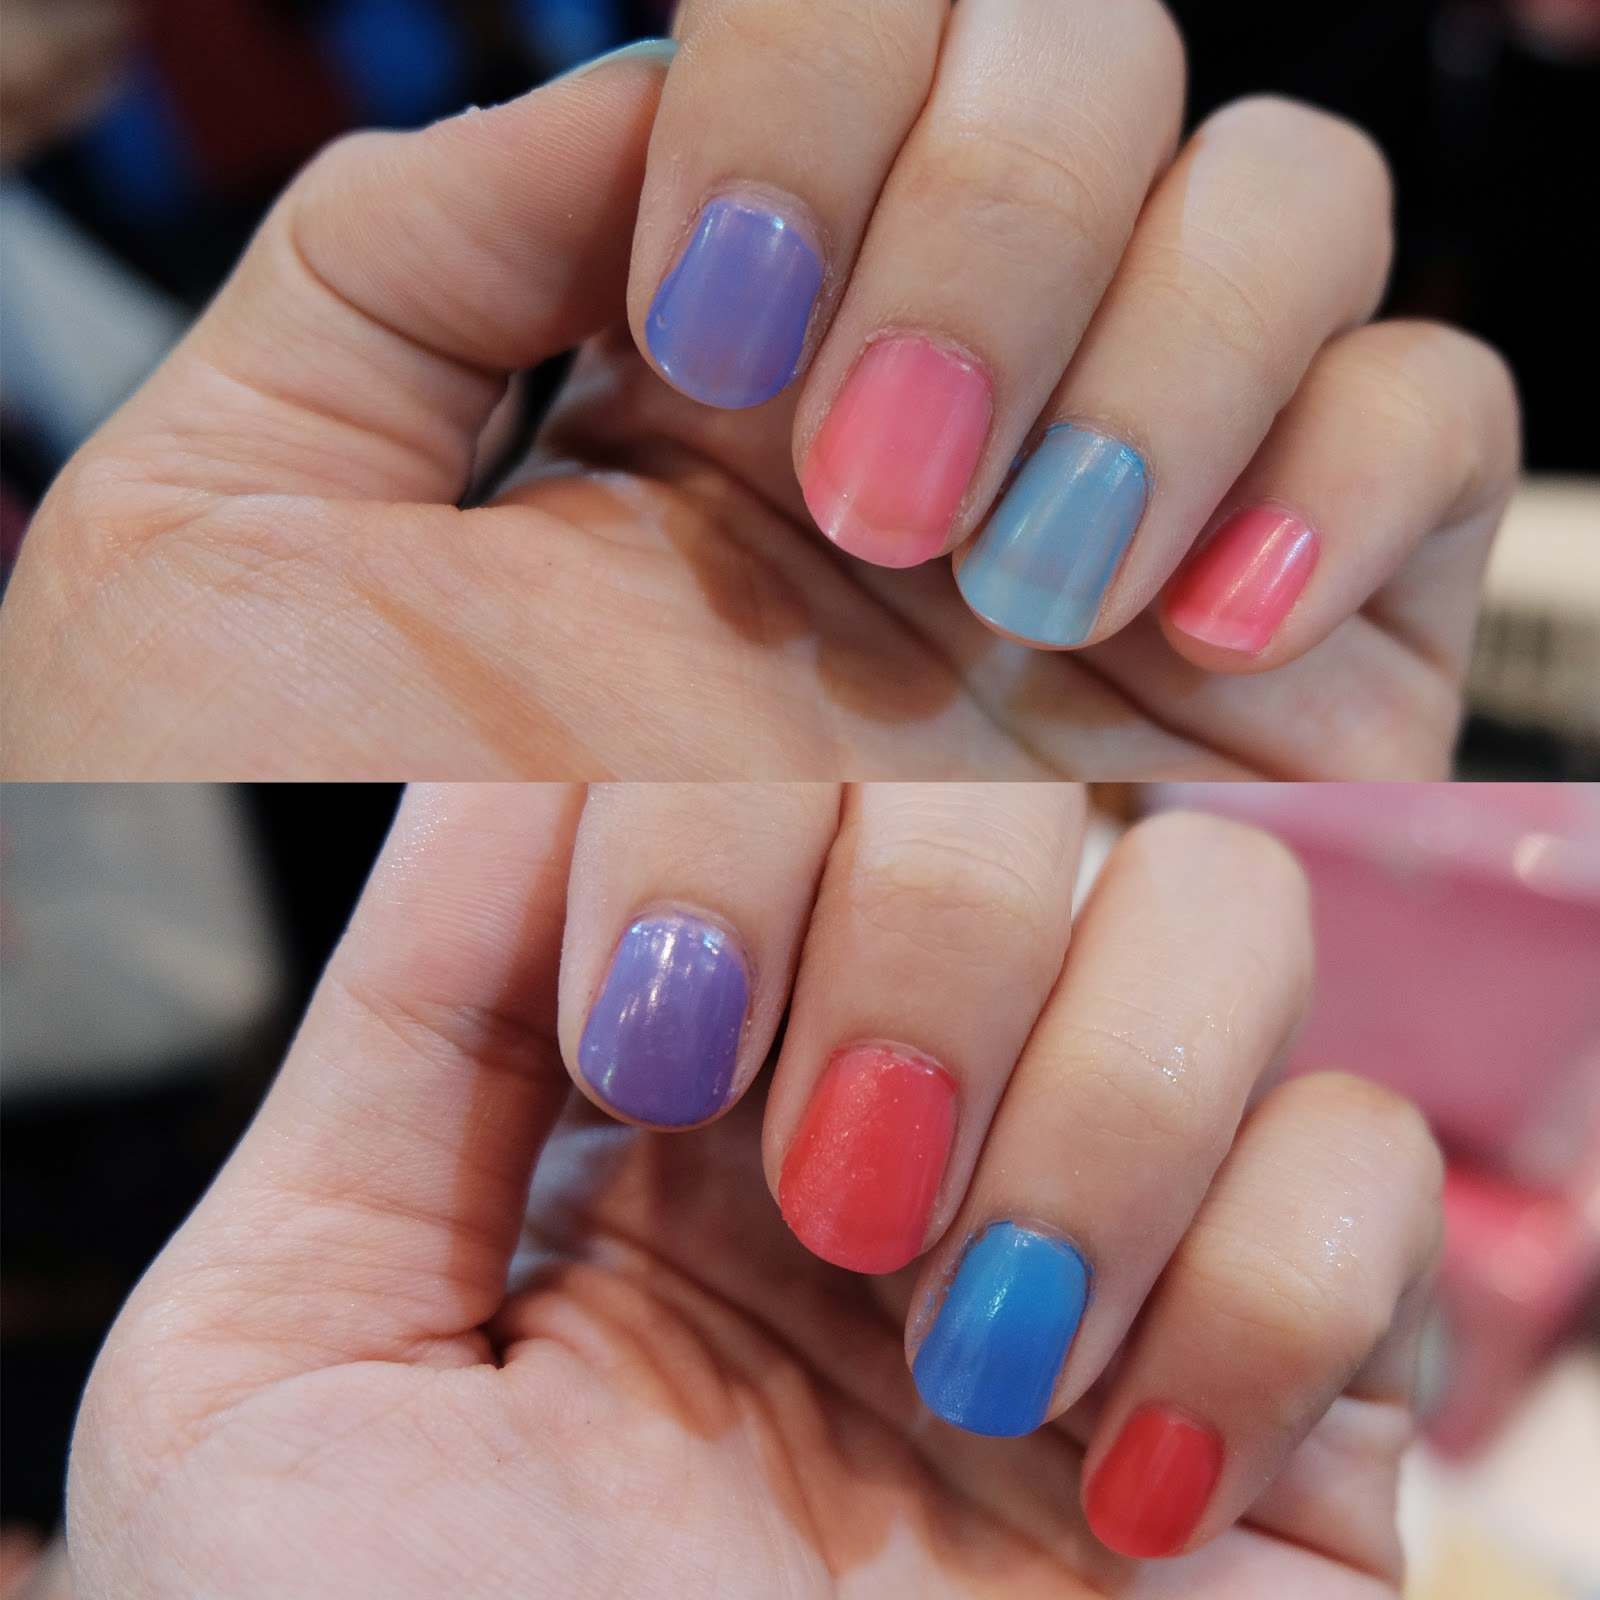 mukka kosmetik changing color nail | bigdreamerblog.com